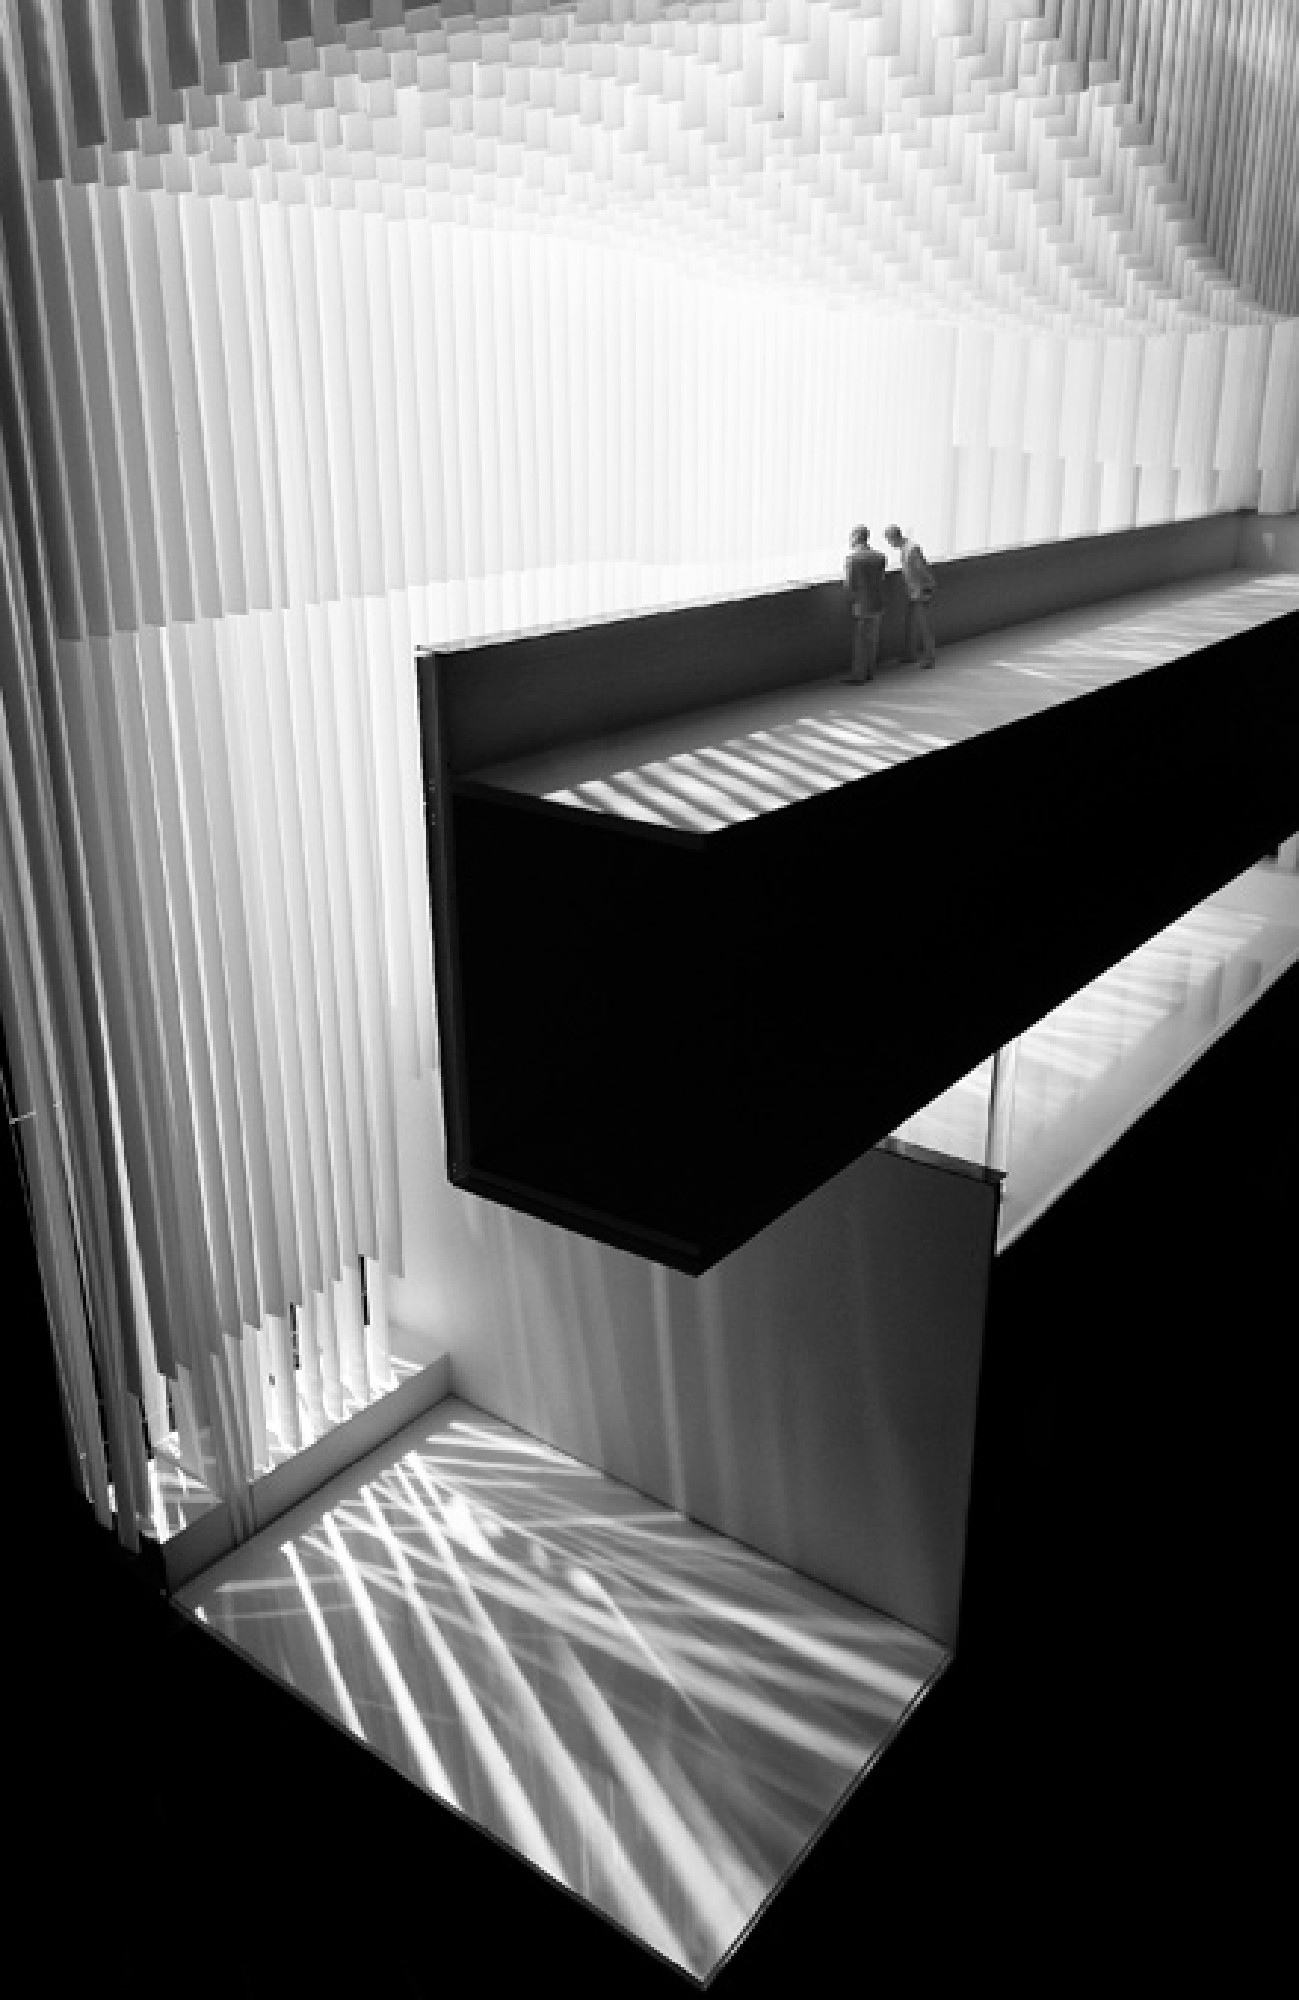 Architectural model photography by architectural Photographer Richard Stonehouse.